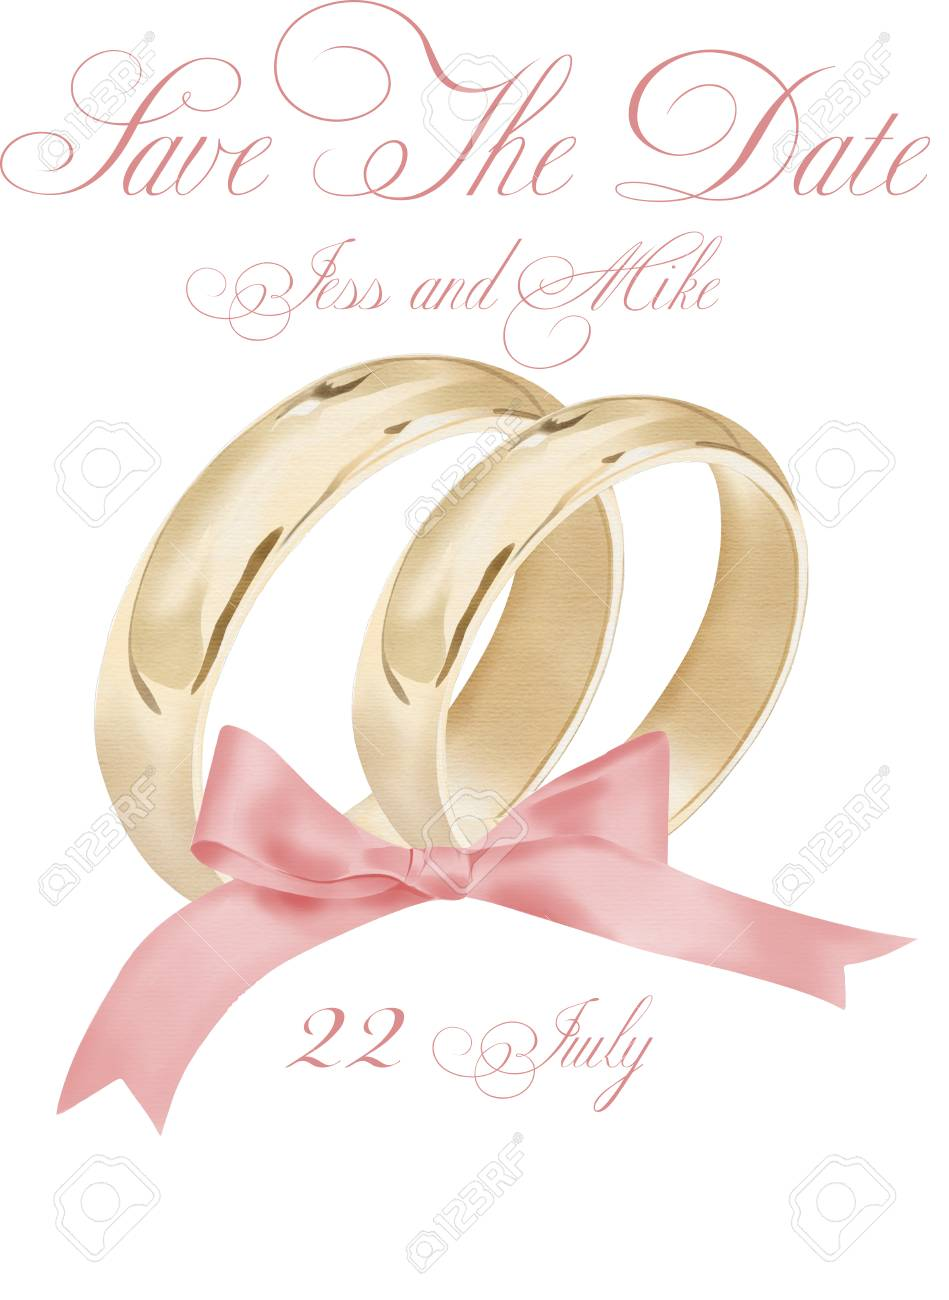 watercolor wedding rings illustration stock photo picture and